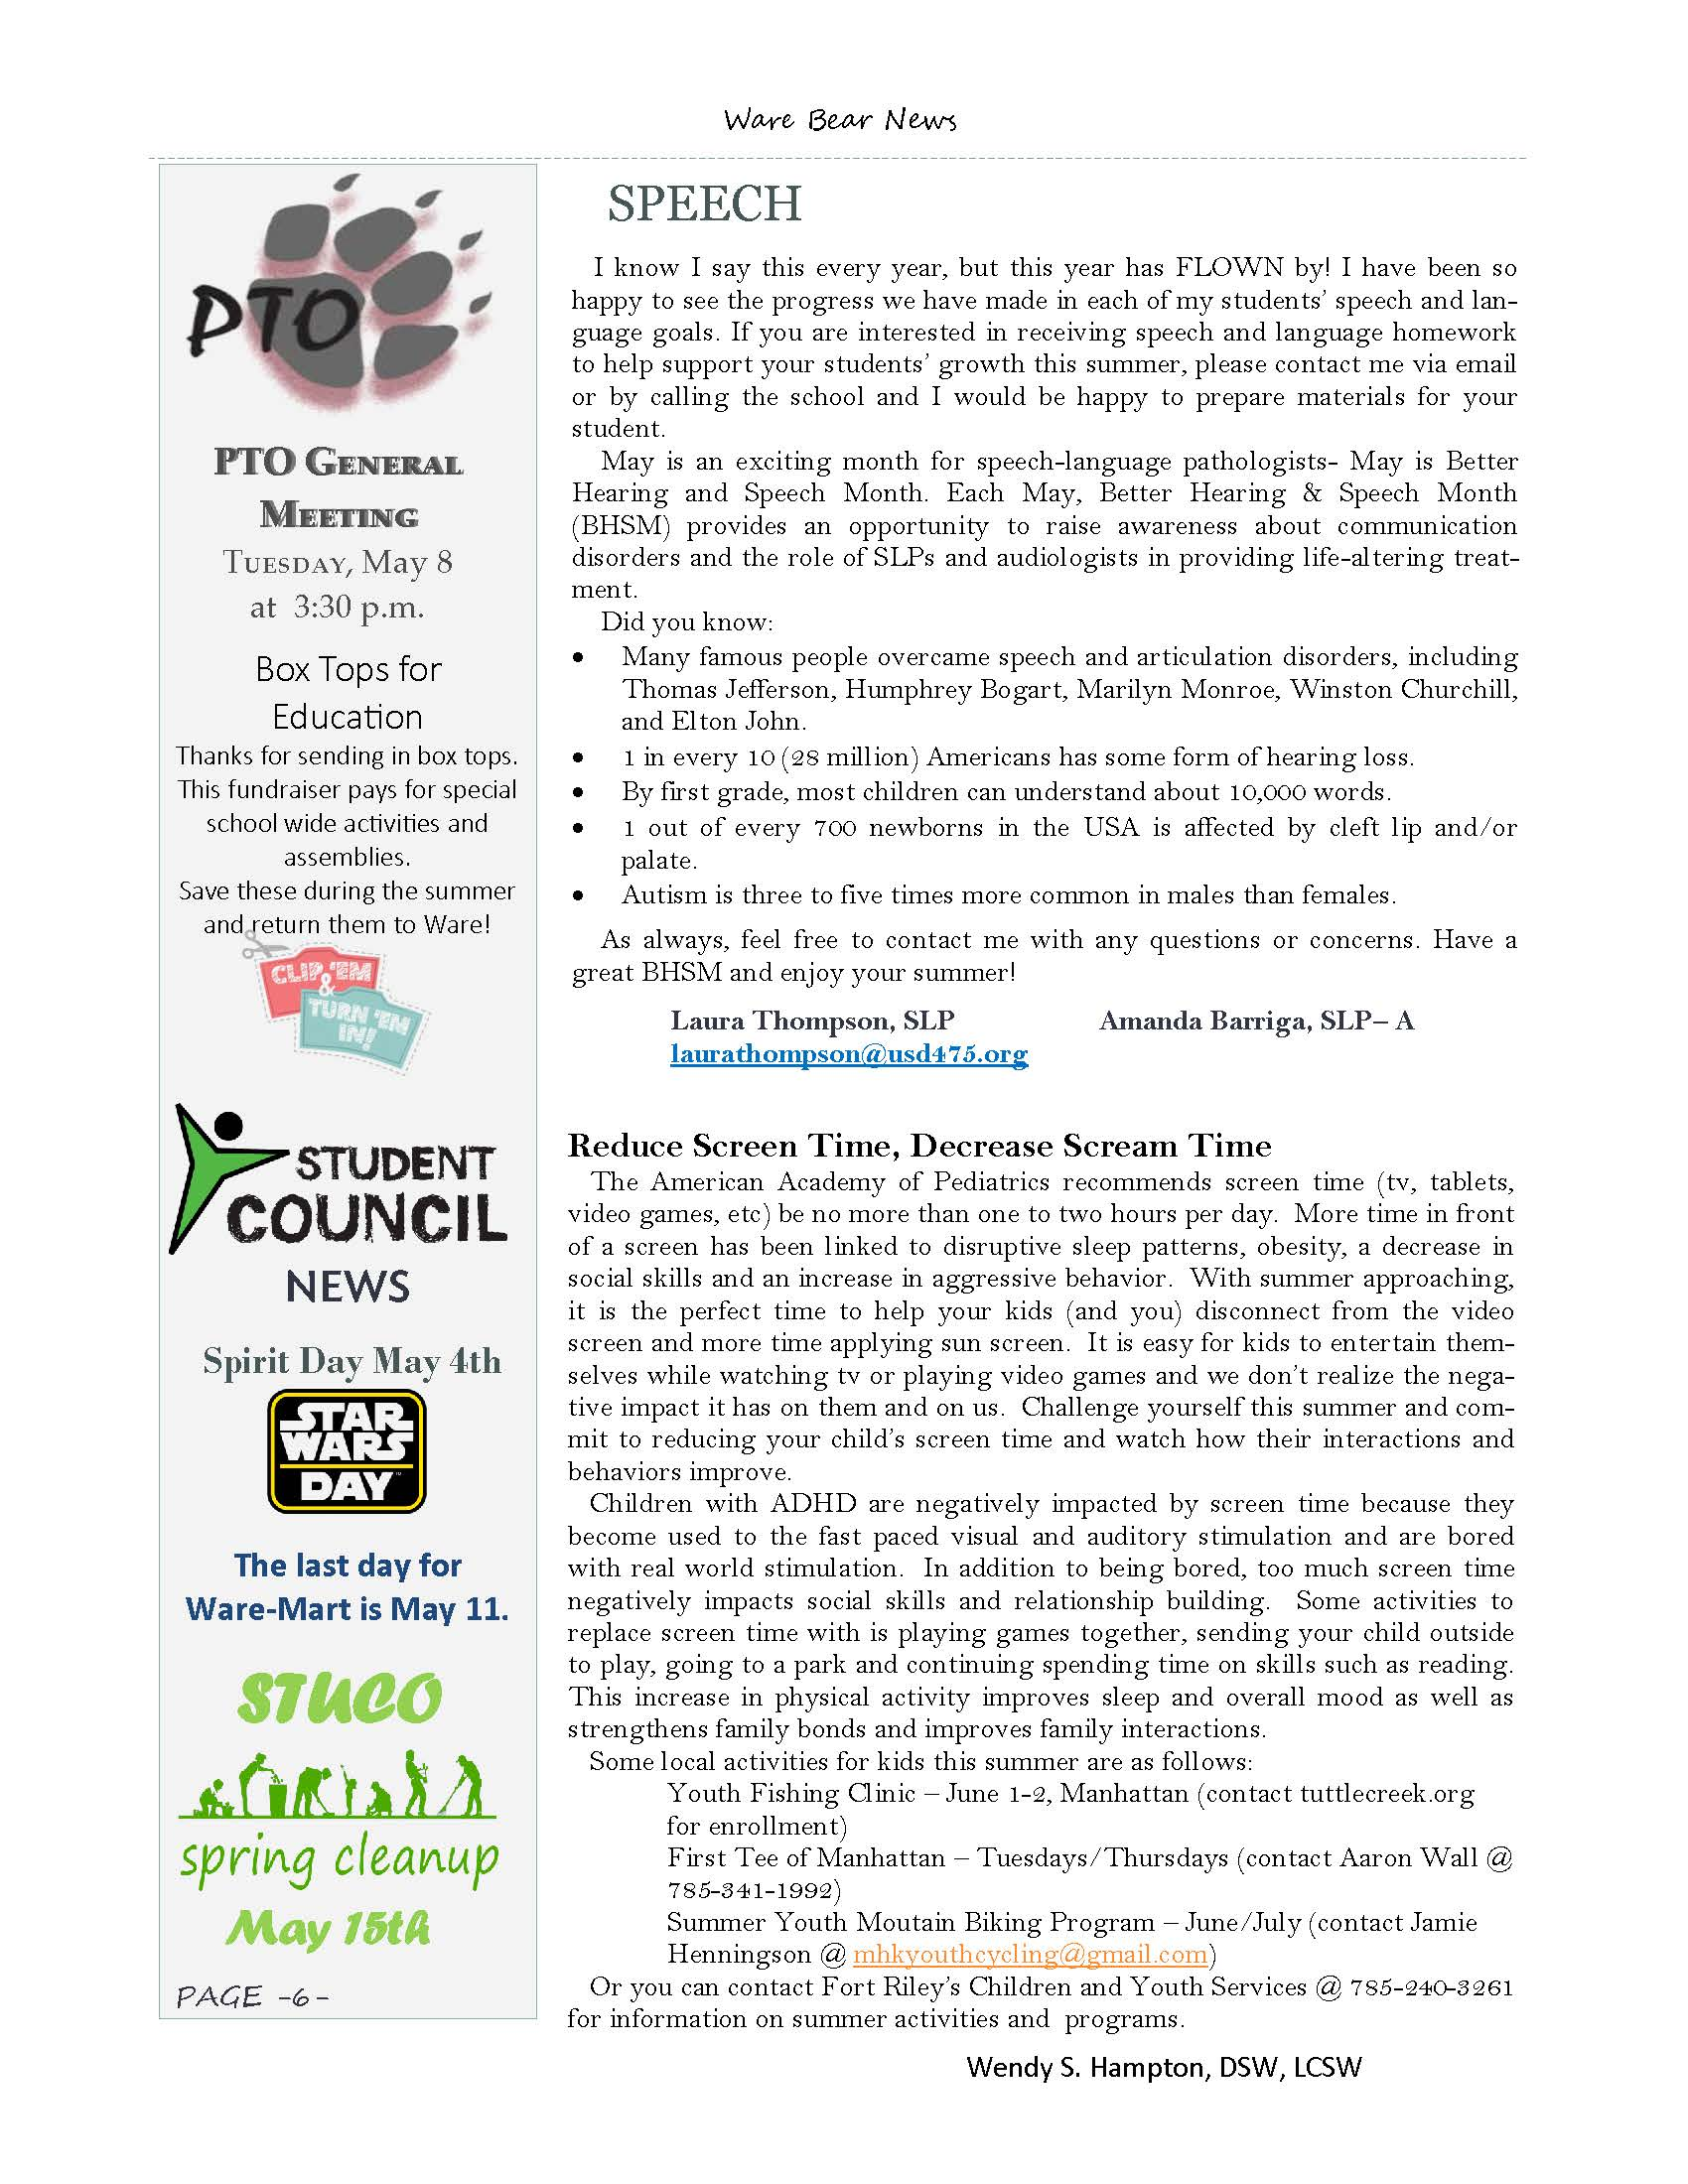 May eNewsletter Page 6